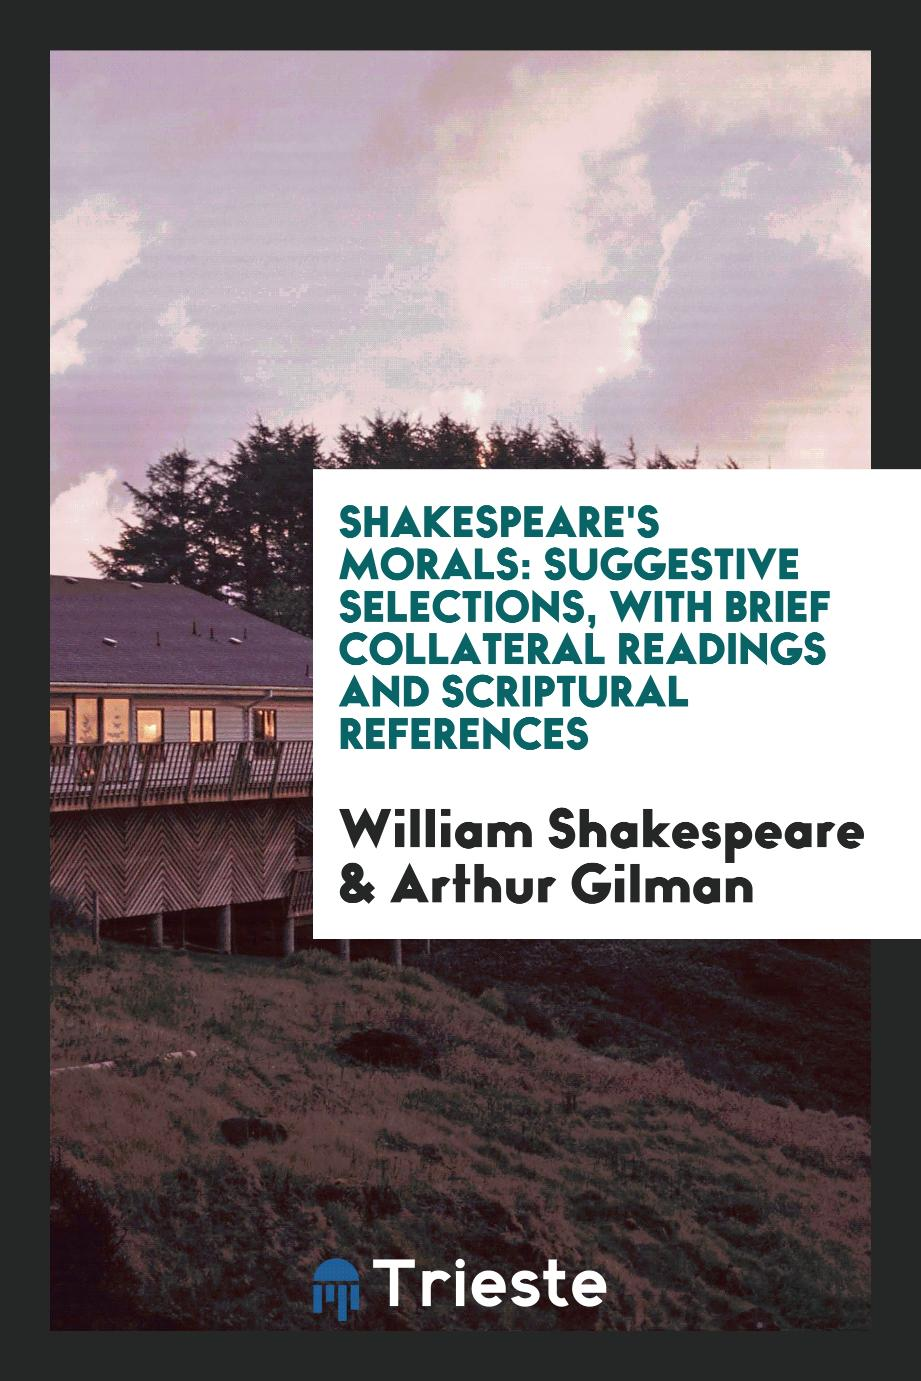 Shakespeare's morals: suggestive selections, with brief collateral readings and Scriptural references